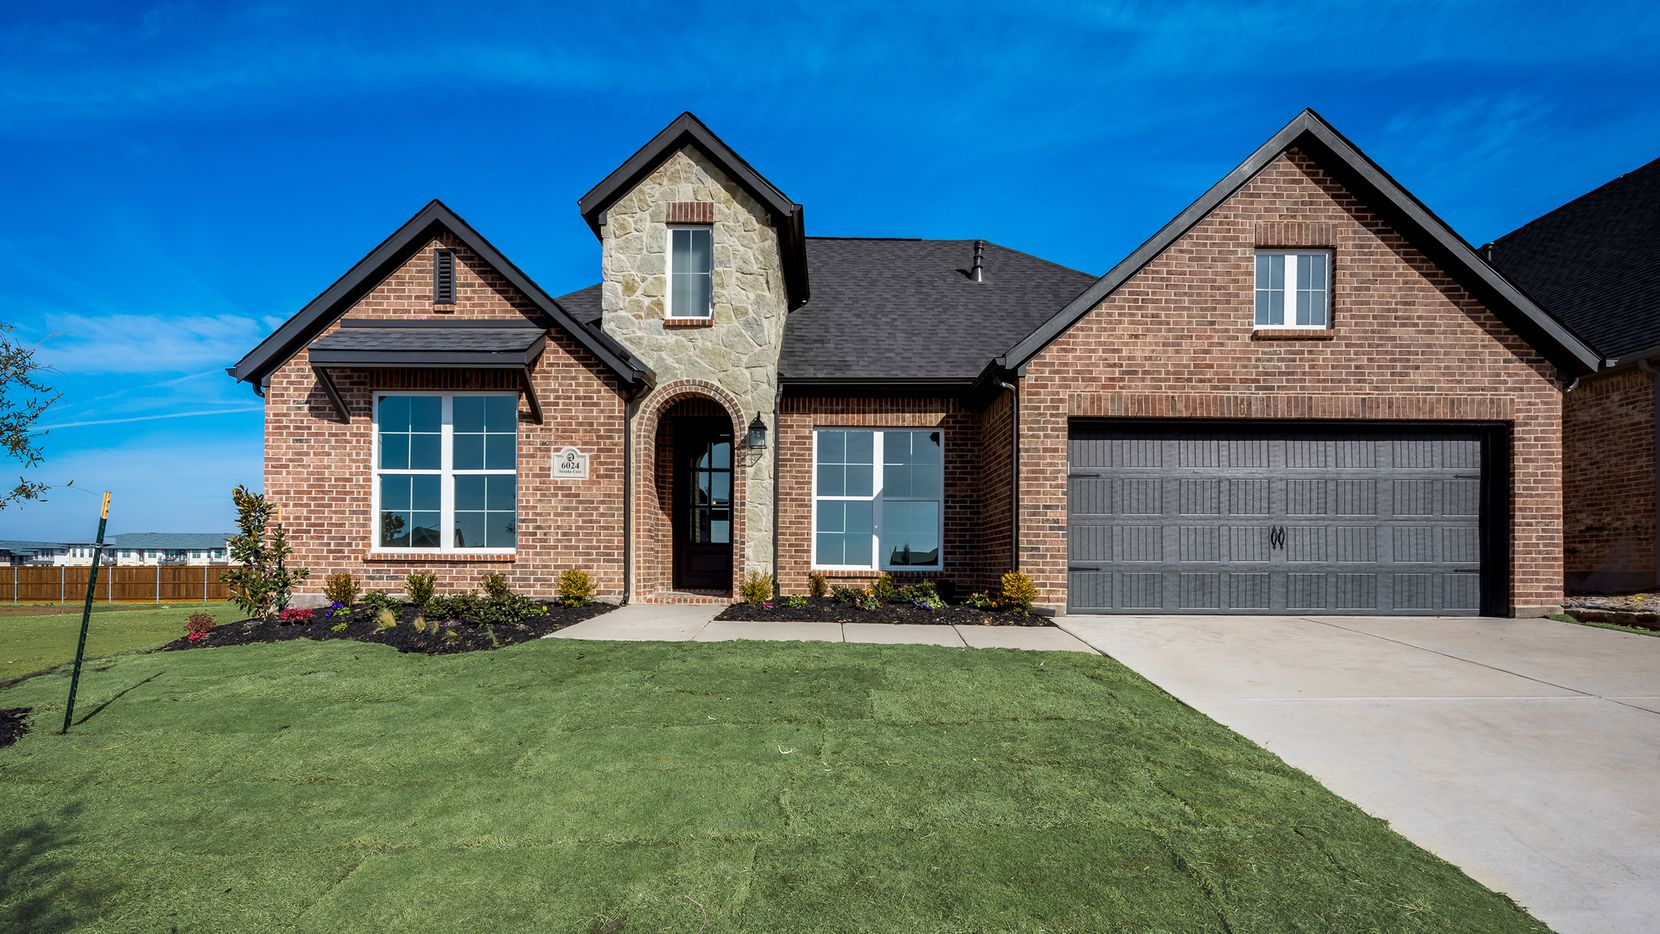 Family owned and operated, Shaddock Homes has been building homes in the Dallas/Fort Worth area for more than 50 years.